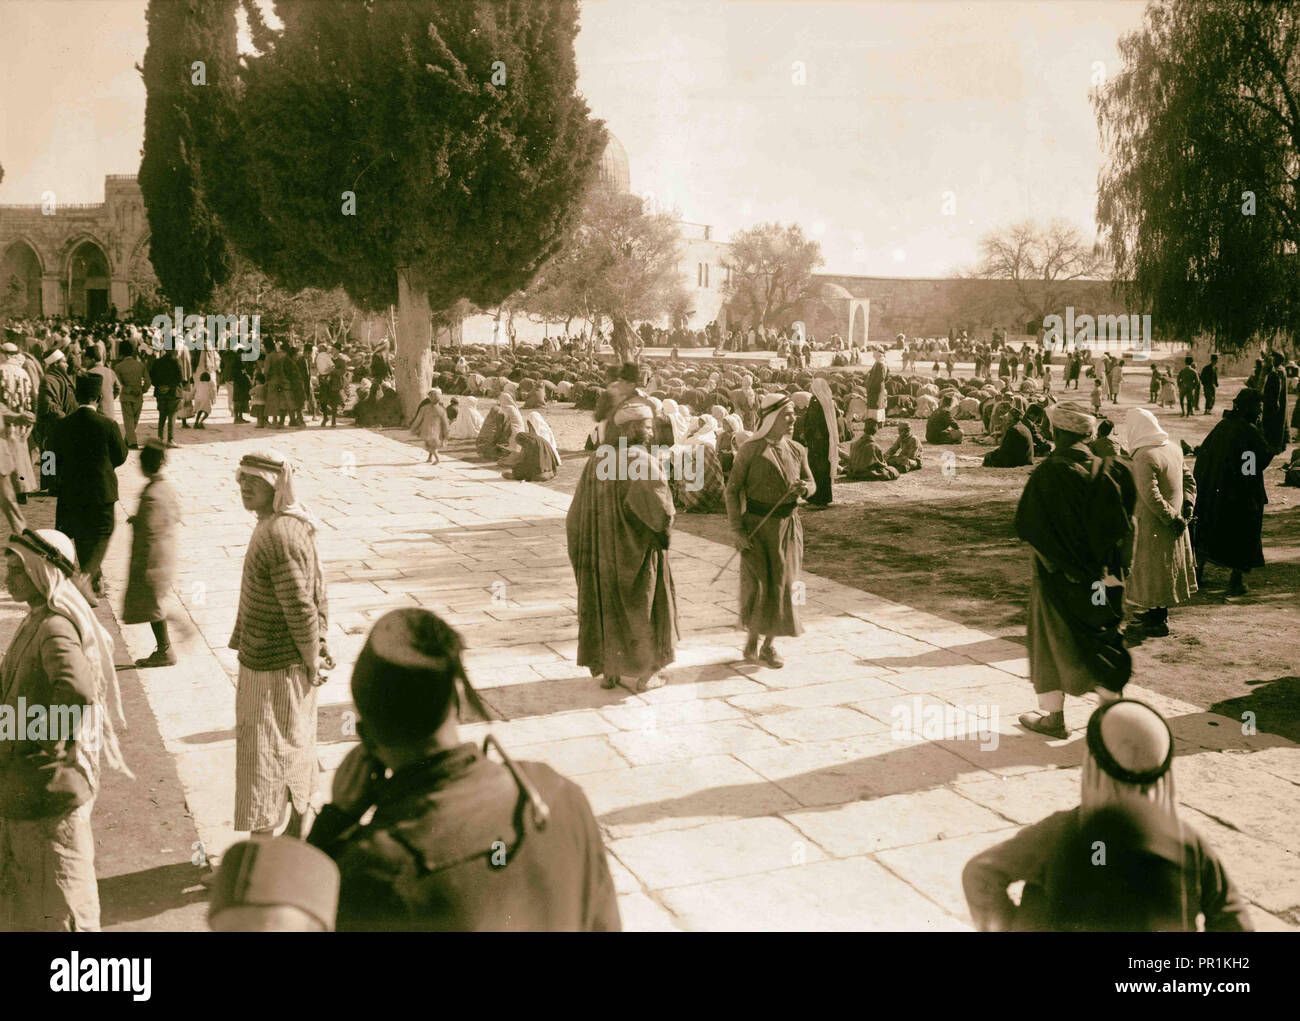 Moslems, Muslims at prayer in mosque (Dome of the Rock) grounds, at time of Mohamed Ali's funeral. 1931, Jerusalem, Israel - Stock Image